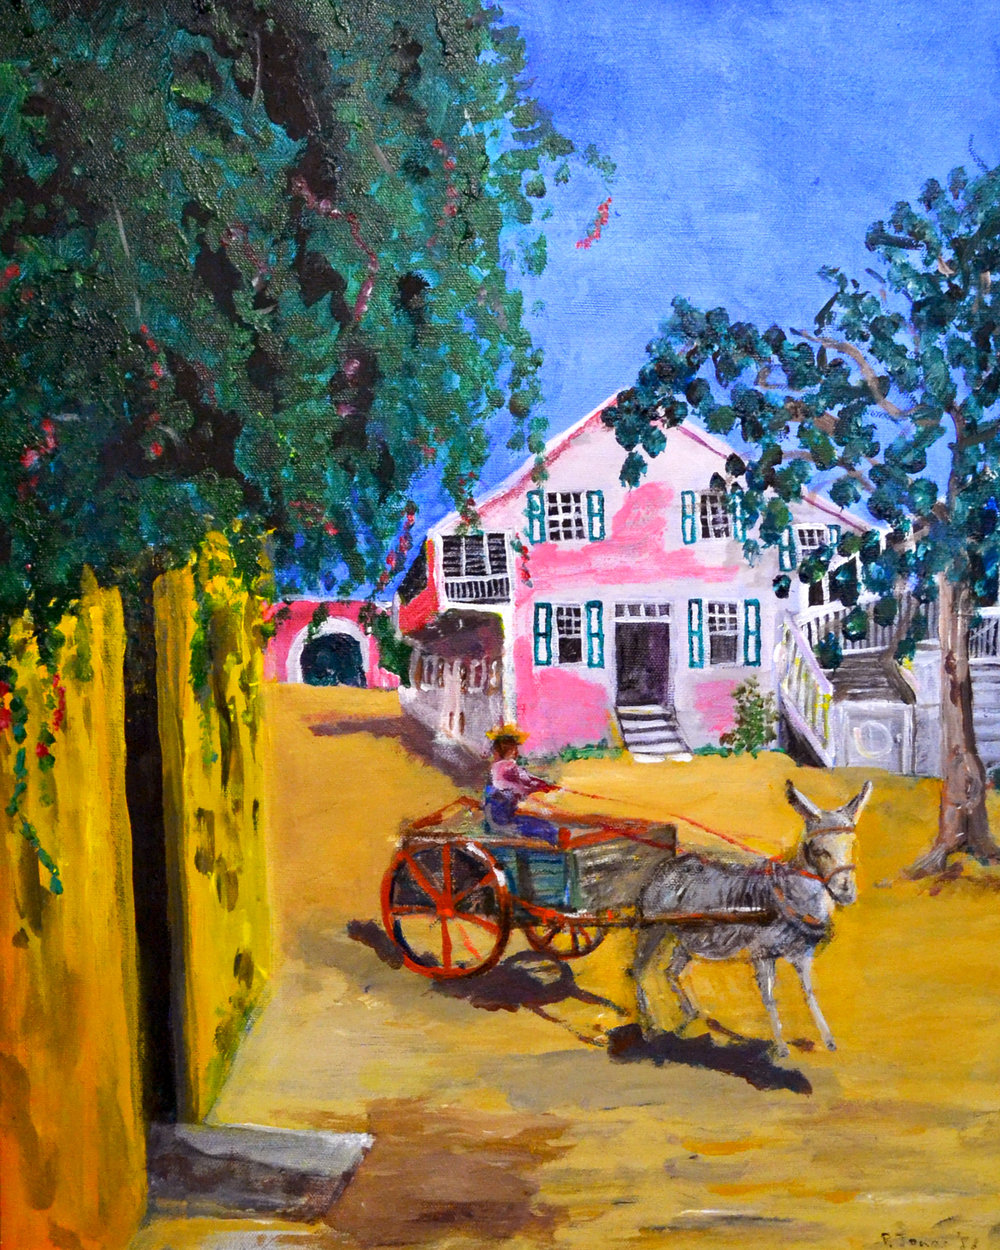 """Balcony House - Market Street"" (1981), Peggy Jones, acrylic on canvas, 13 1/2 x 10 1/2. Collection of the artist. As seen in ""In Retrospect: The Whimsy of Peggy Jones"" in the Project Space at the NAGB."